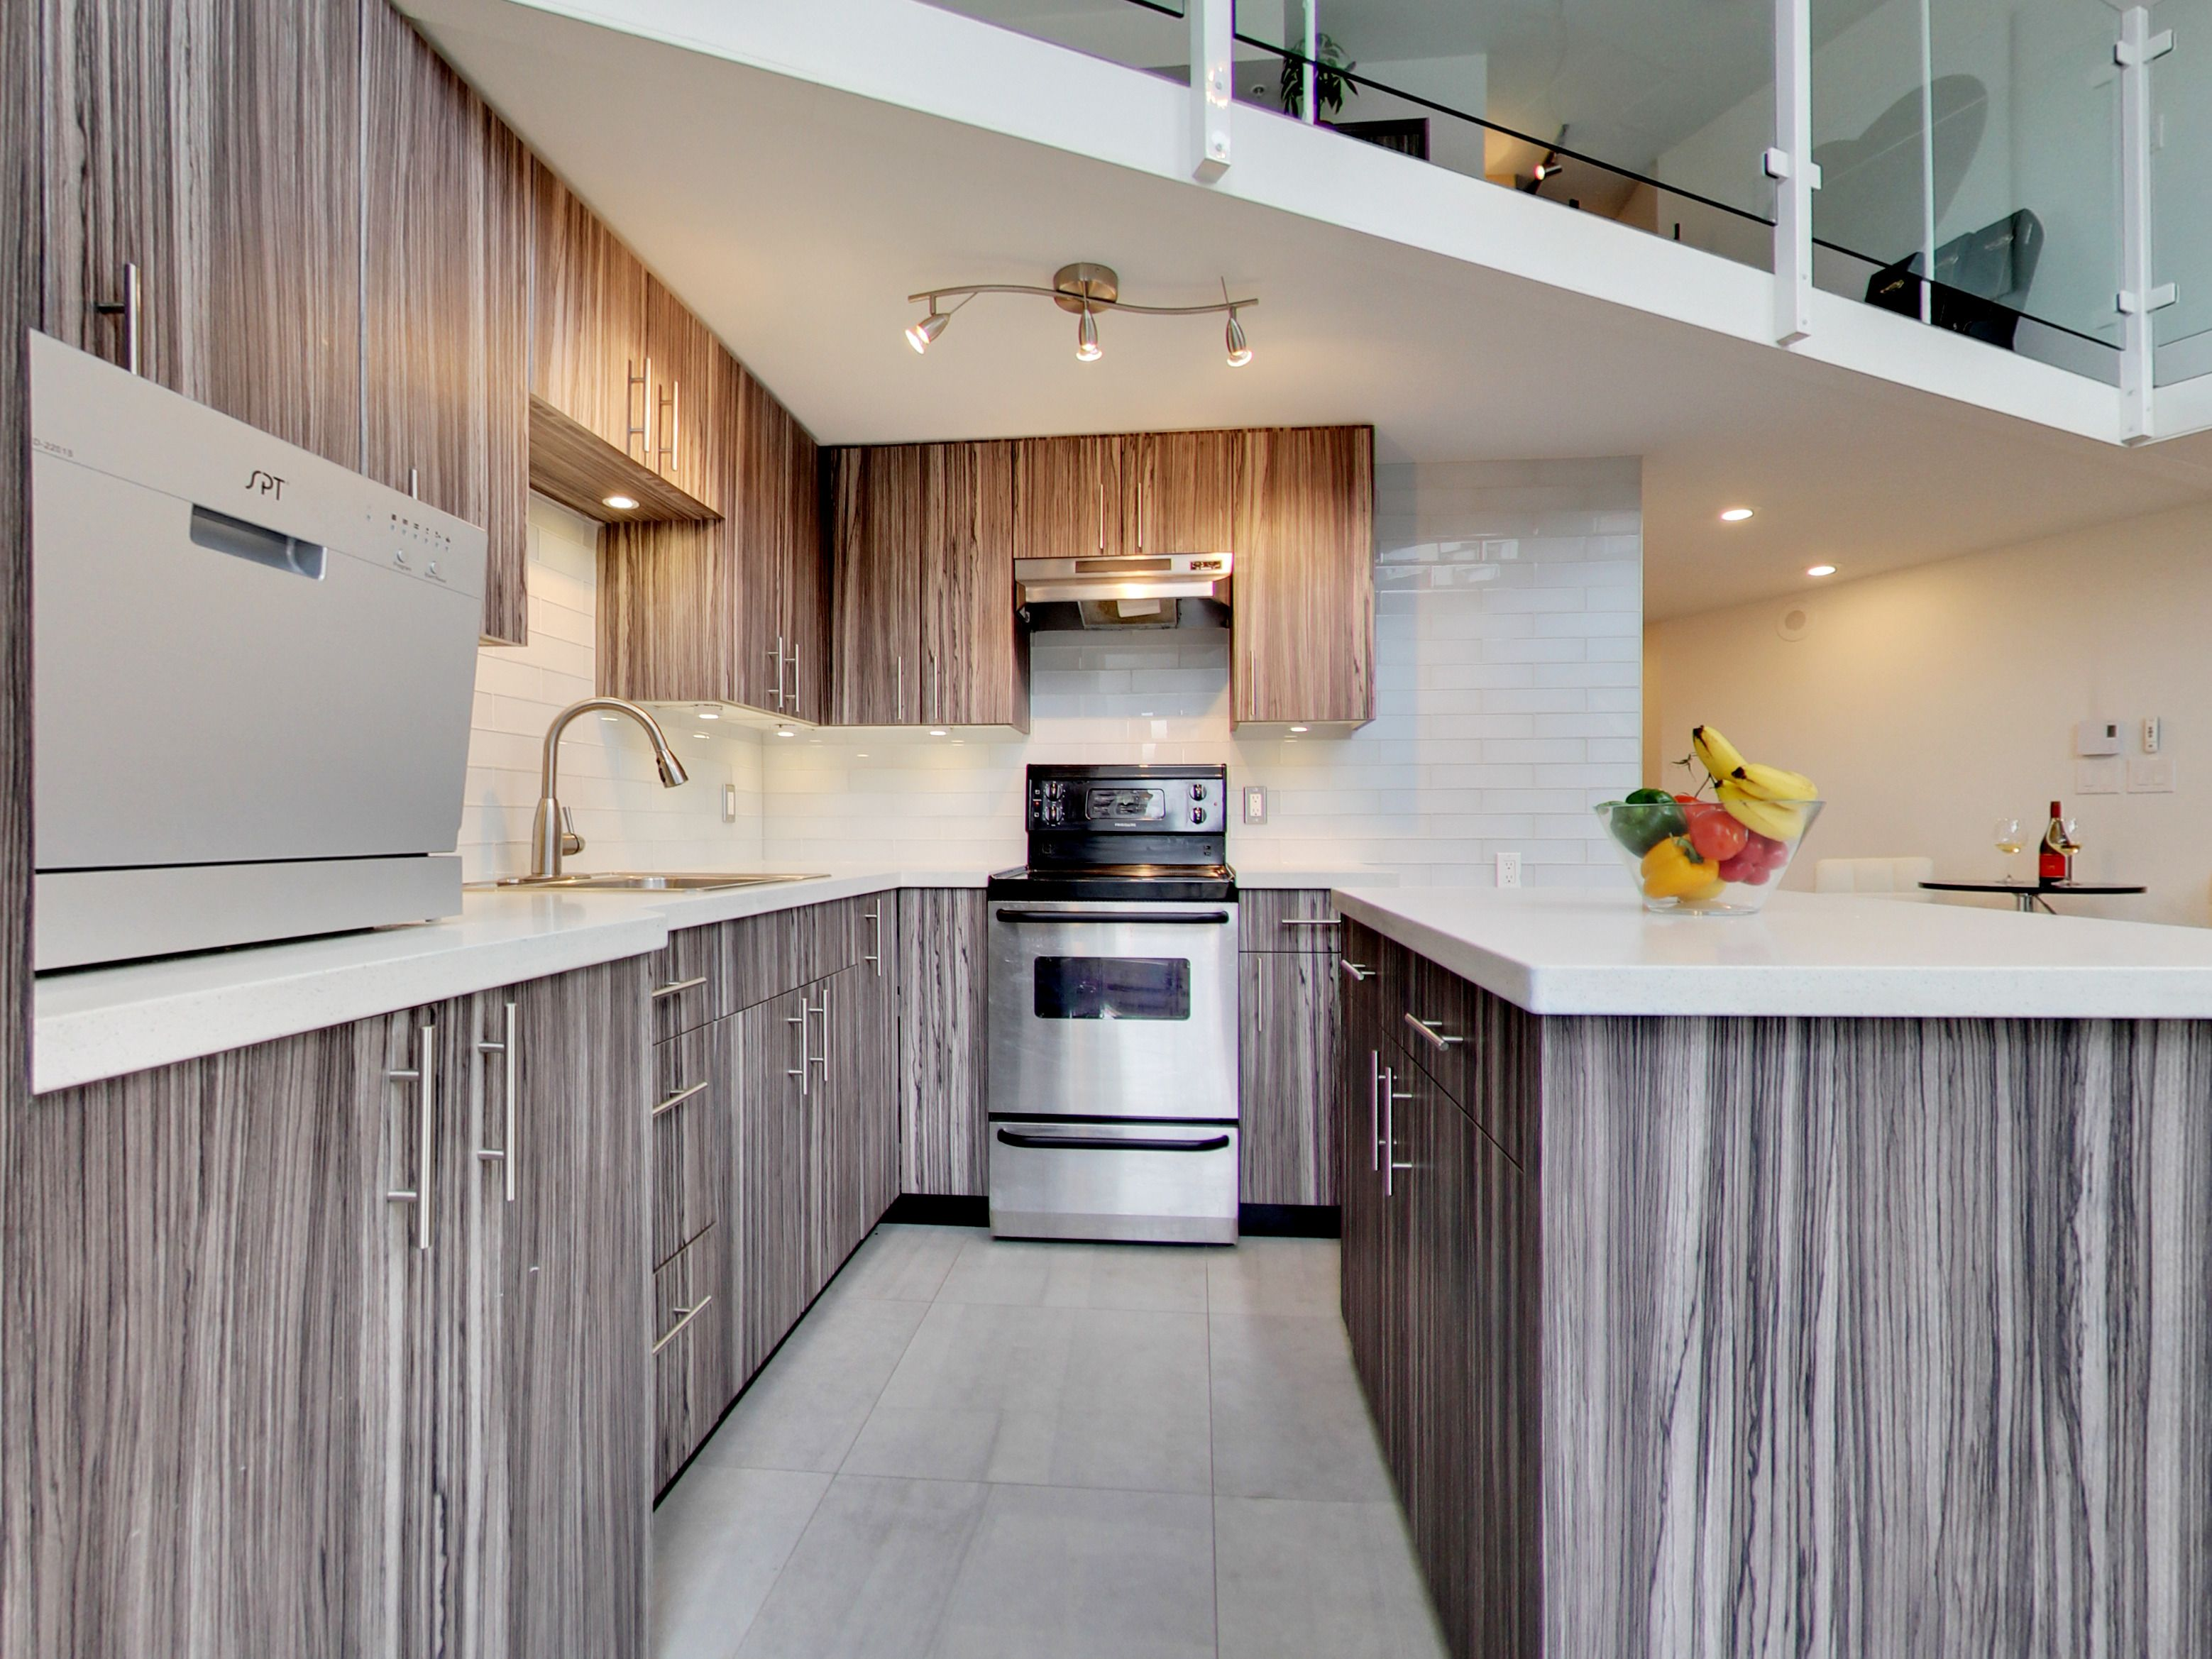 The kitchen offers a lot of counter space (Jamie henry)